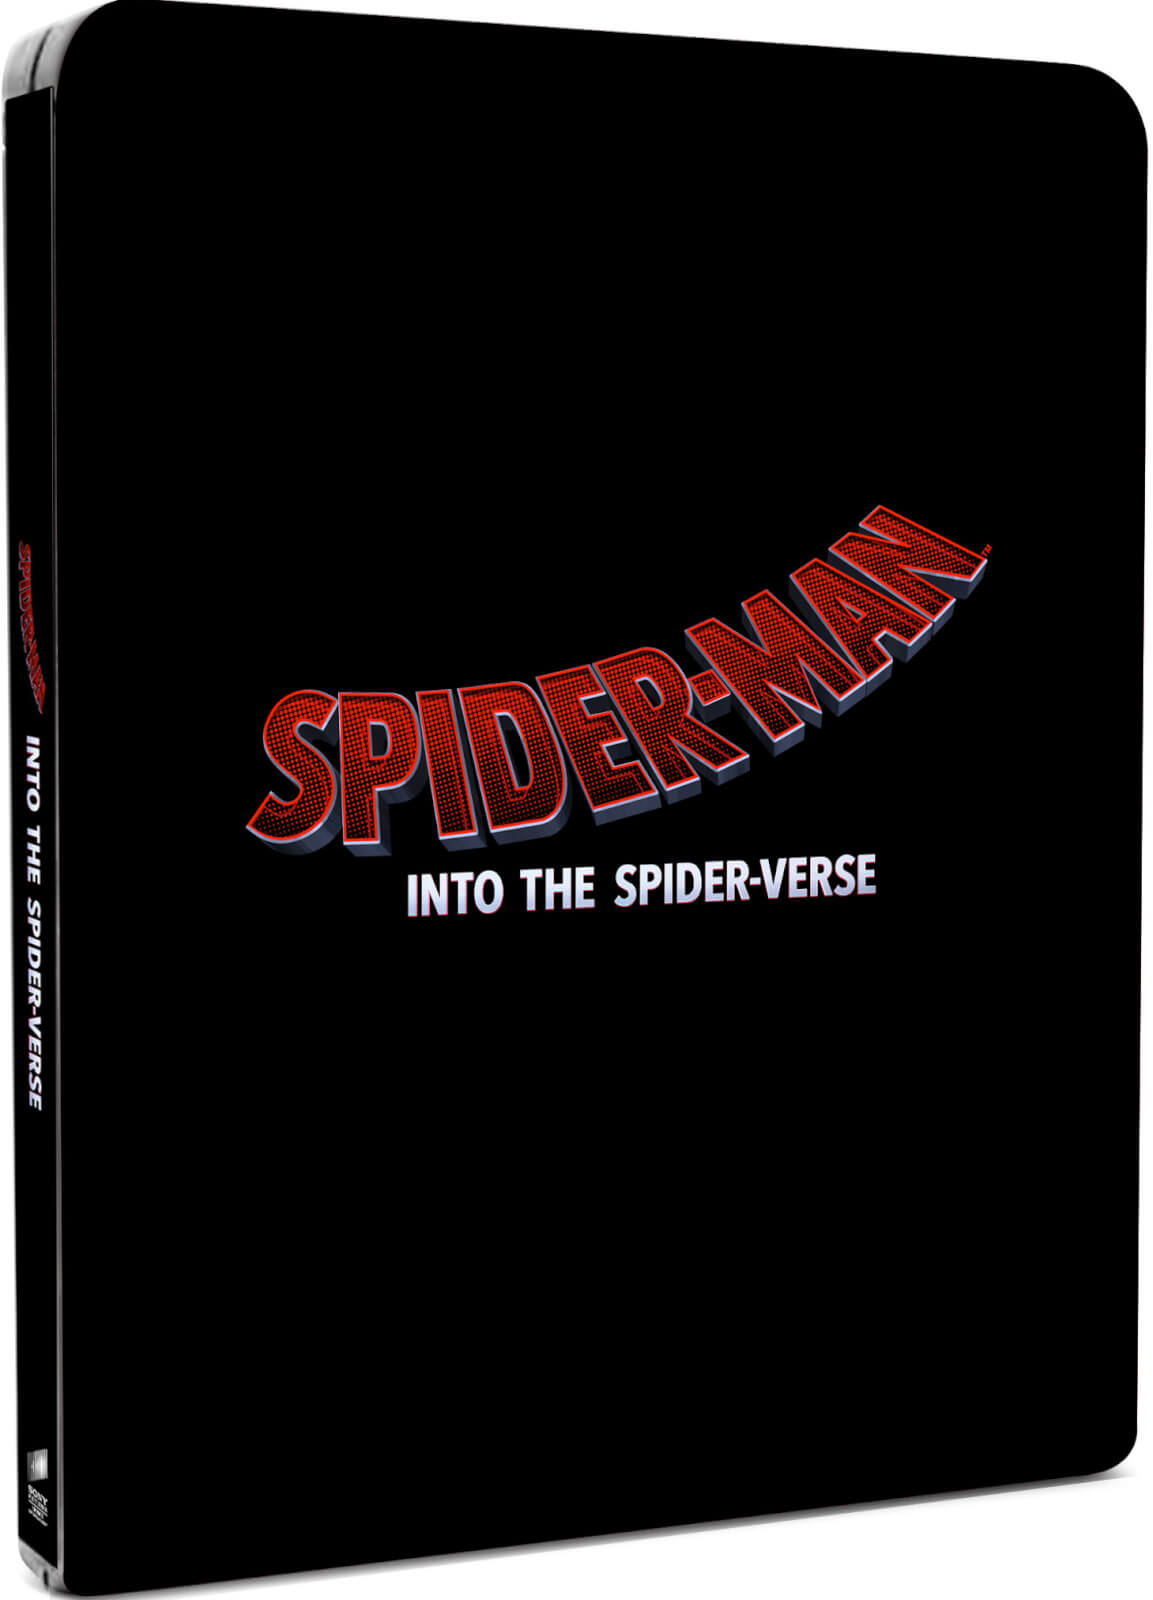 Spider Man Into The Spider Verse Zavvi Exclusive Steelbook Blu